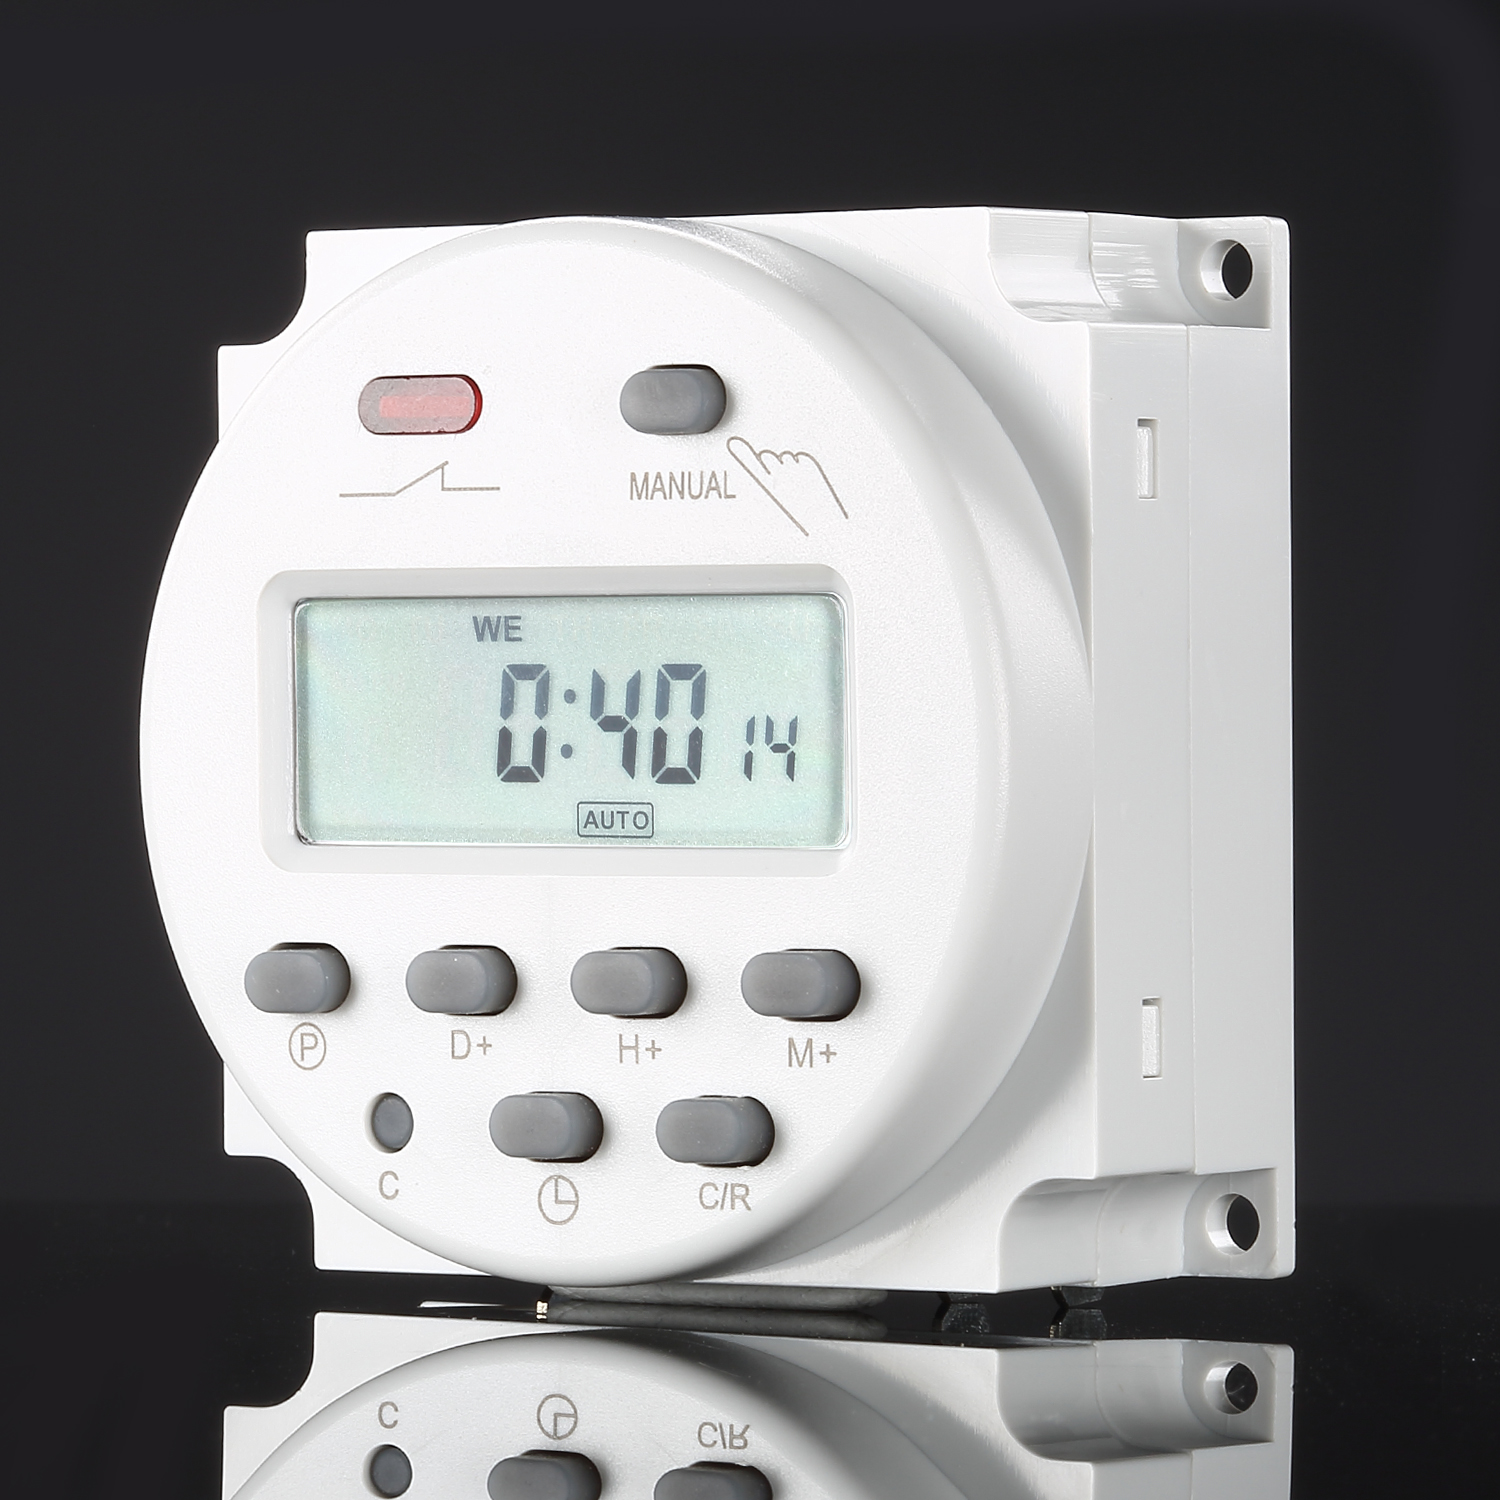 Digital Power Timer : Lcd display digital power programmable timer ac v time